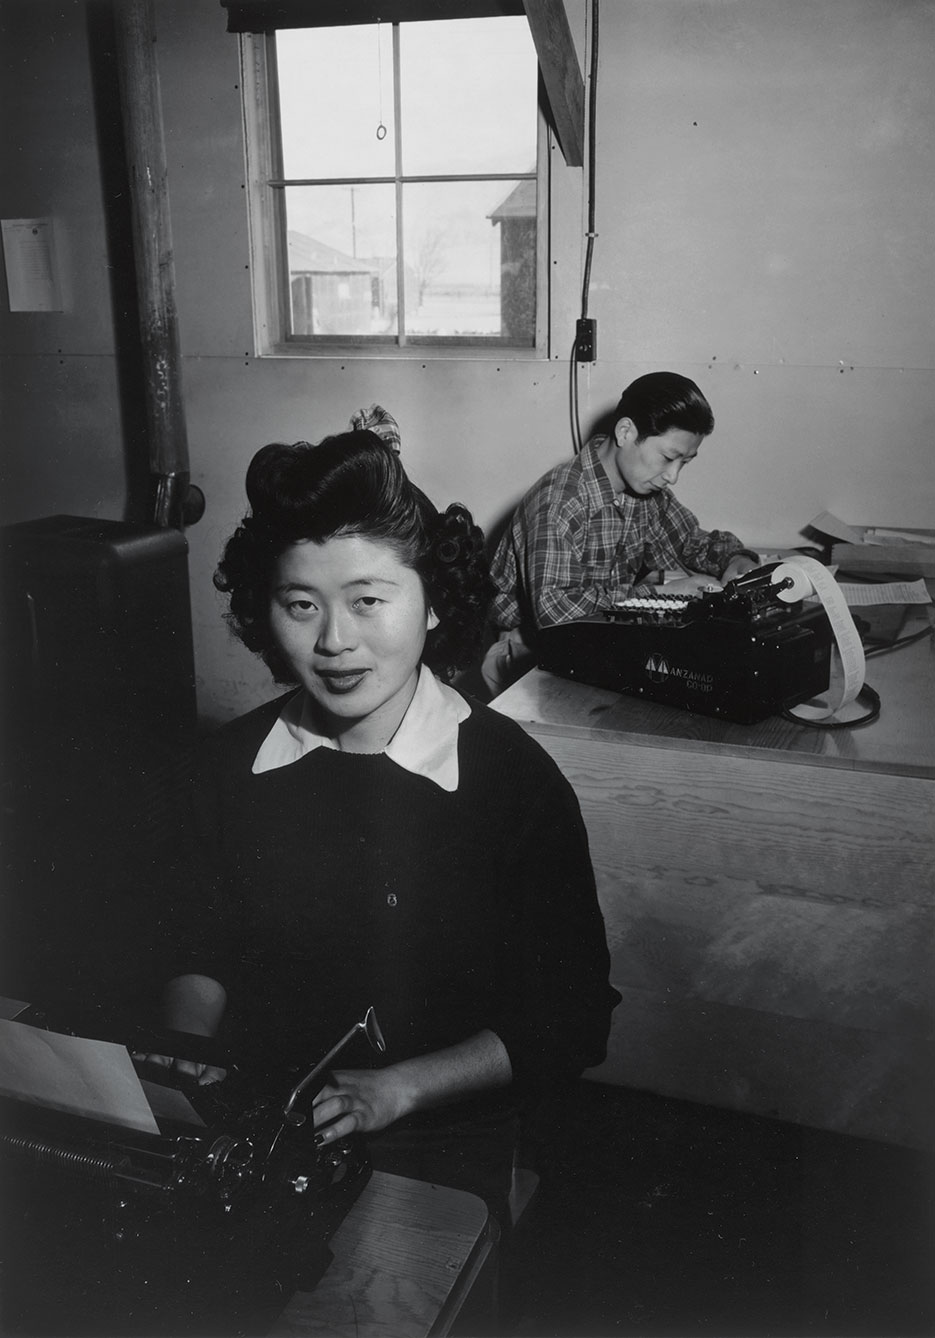 Rose Fukuda and Roy Takeda, Manzanar Relocation Center, 1943 (Library of Congress/Ansel Adams)